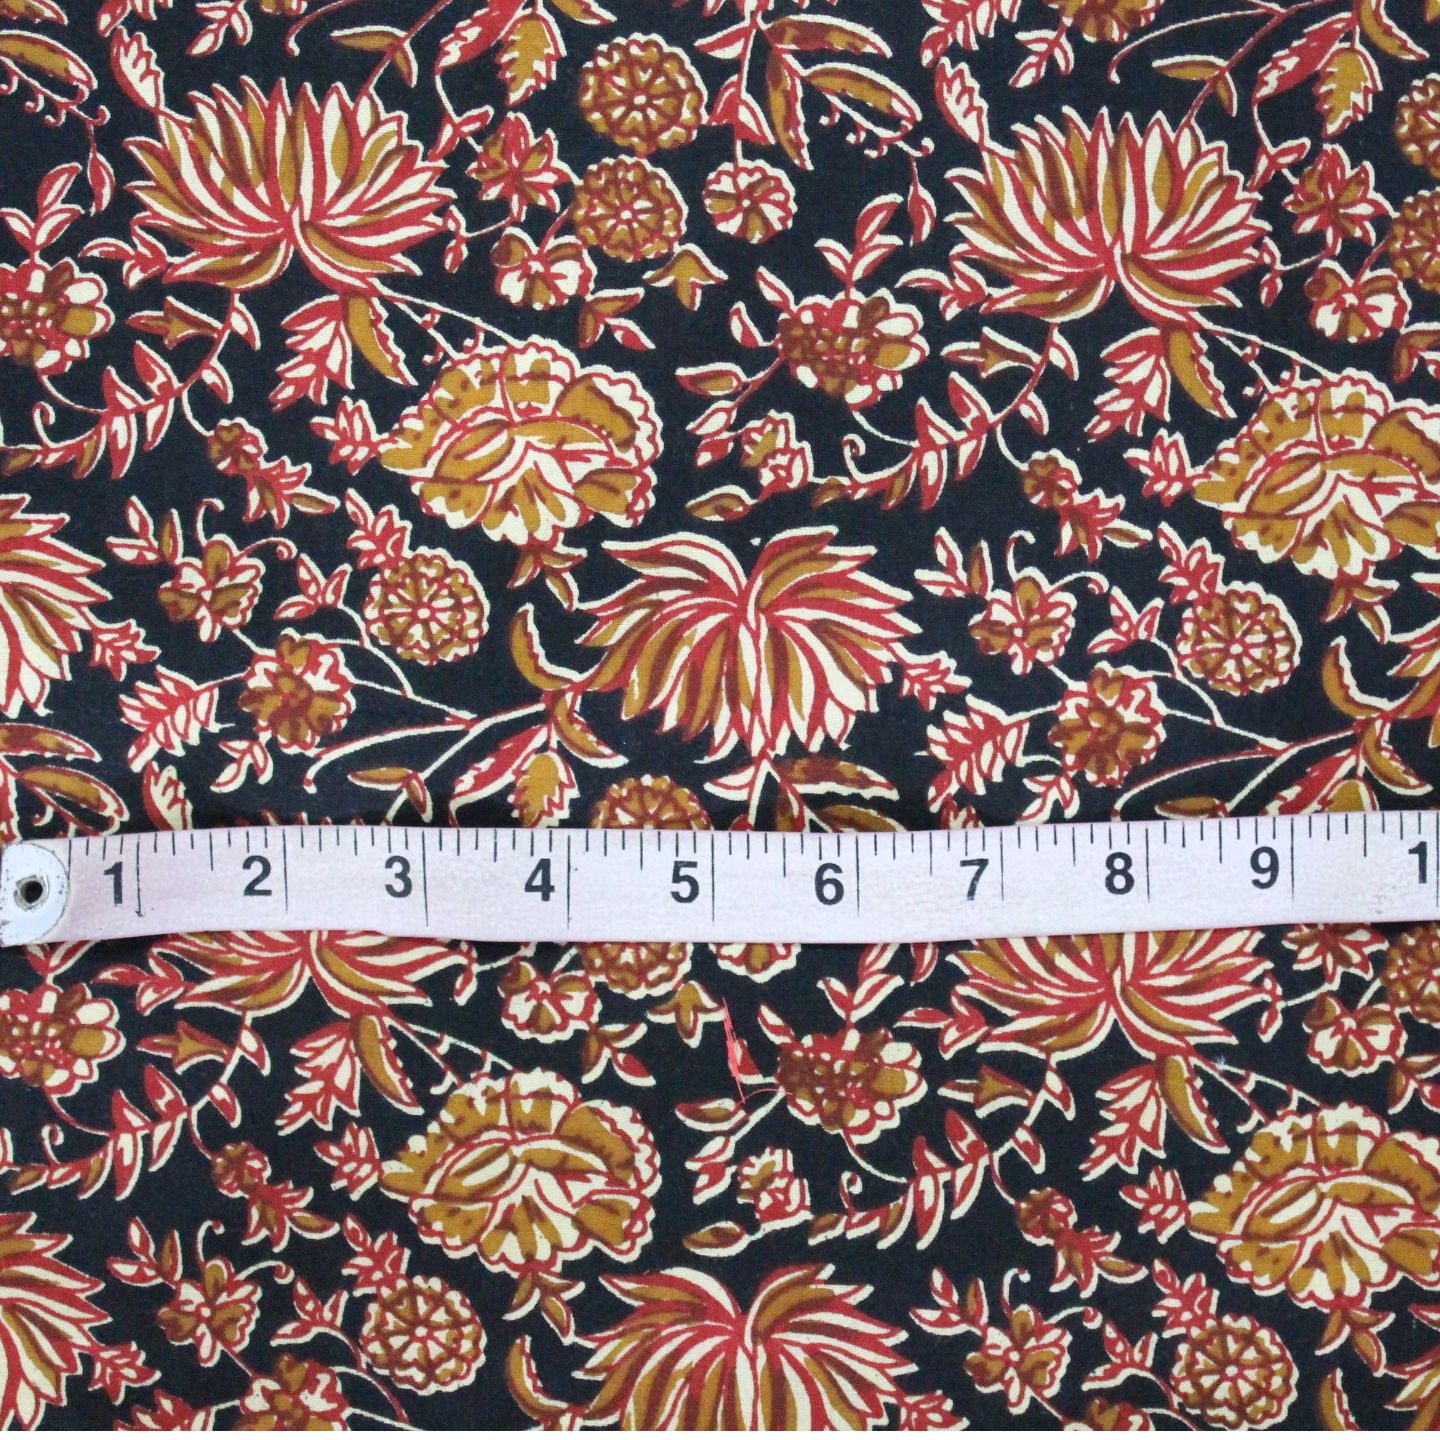 Black Red Floral Printed Fabric Rs 150Meter